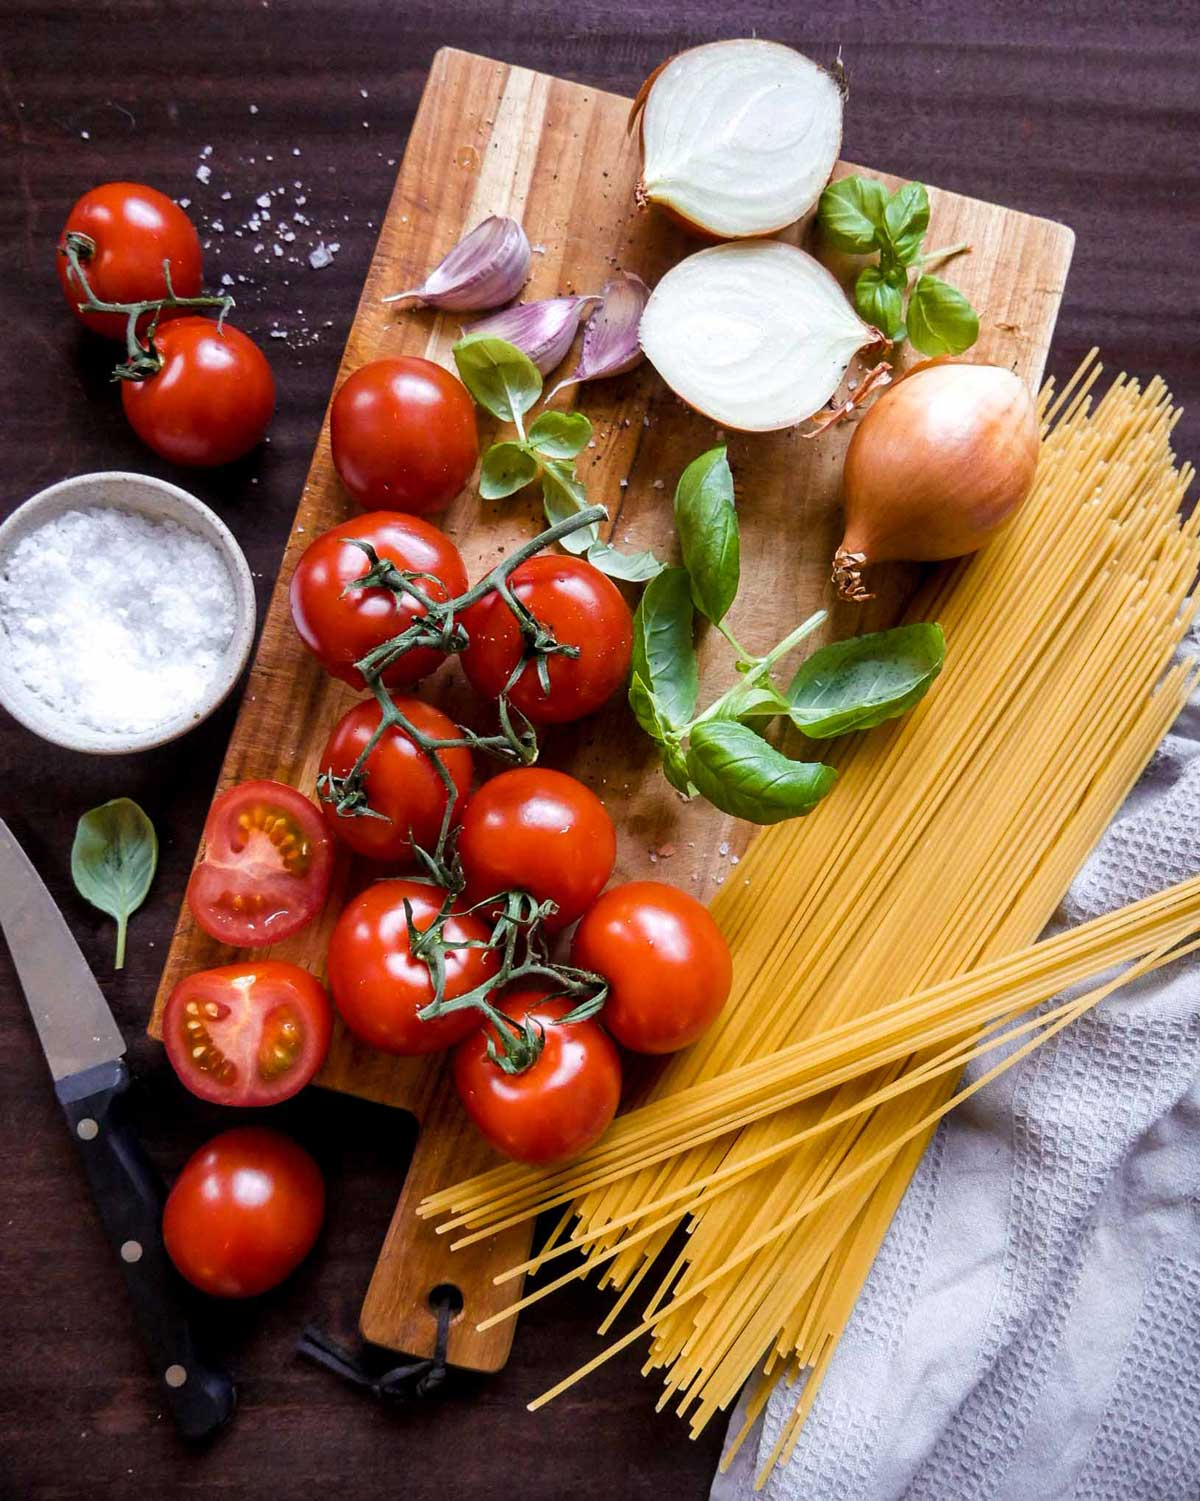 ingredienser til one pot spaghetti opskrift med tomater